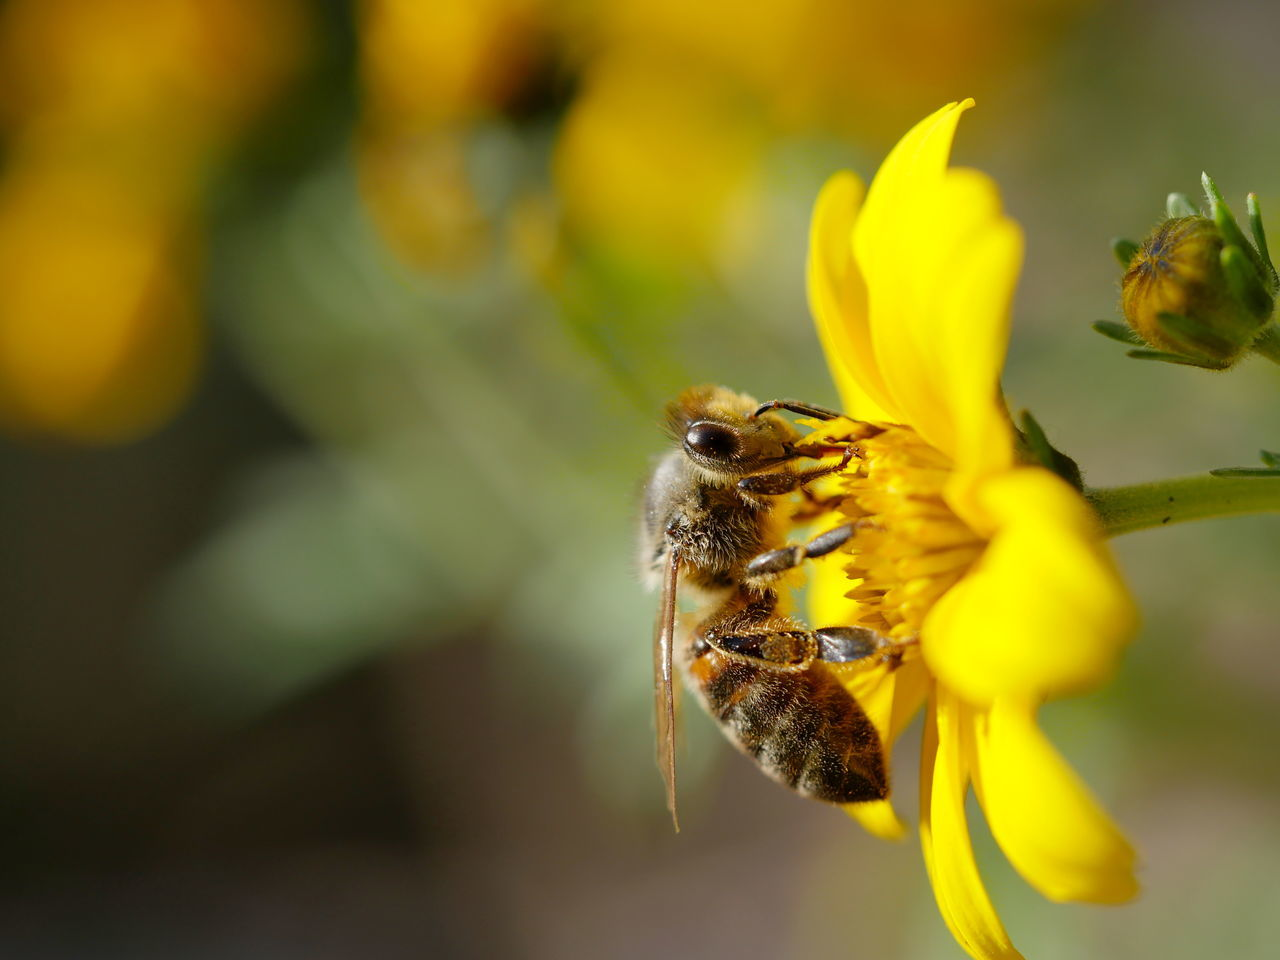 Bee Flower Fragility Insect Macro Nature No People Outdoors Pollination Close-up Animals Animal Themes Exceptional Photographs EyeEm Best Shots In Bloom Check This Out Perspective EyeEm Nature Lover Save The Bees Side View Taking Photos Wildbee The Great Outdoors - 2017 EyeEm Awards